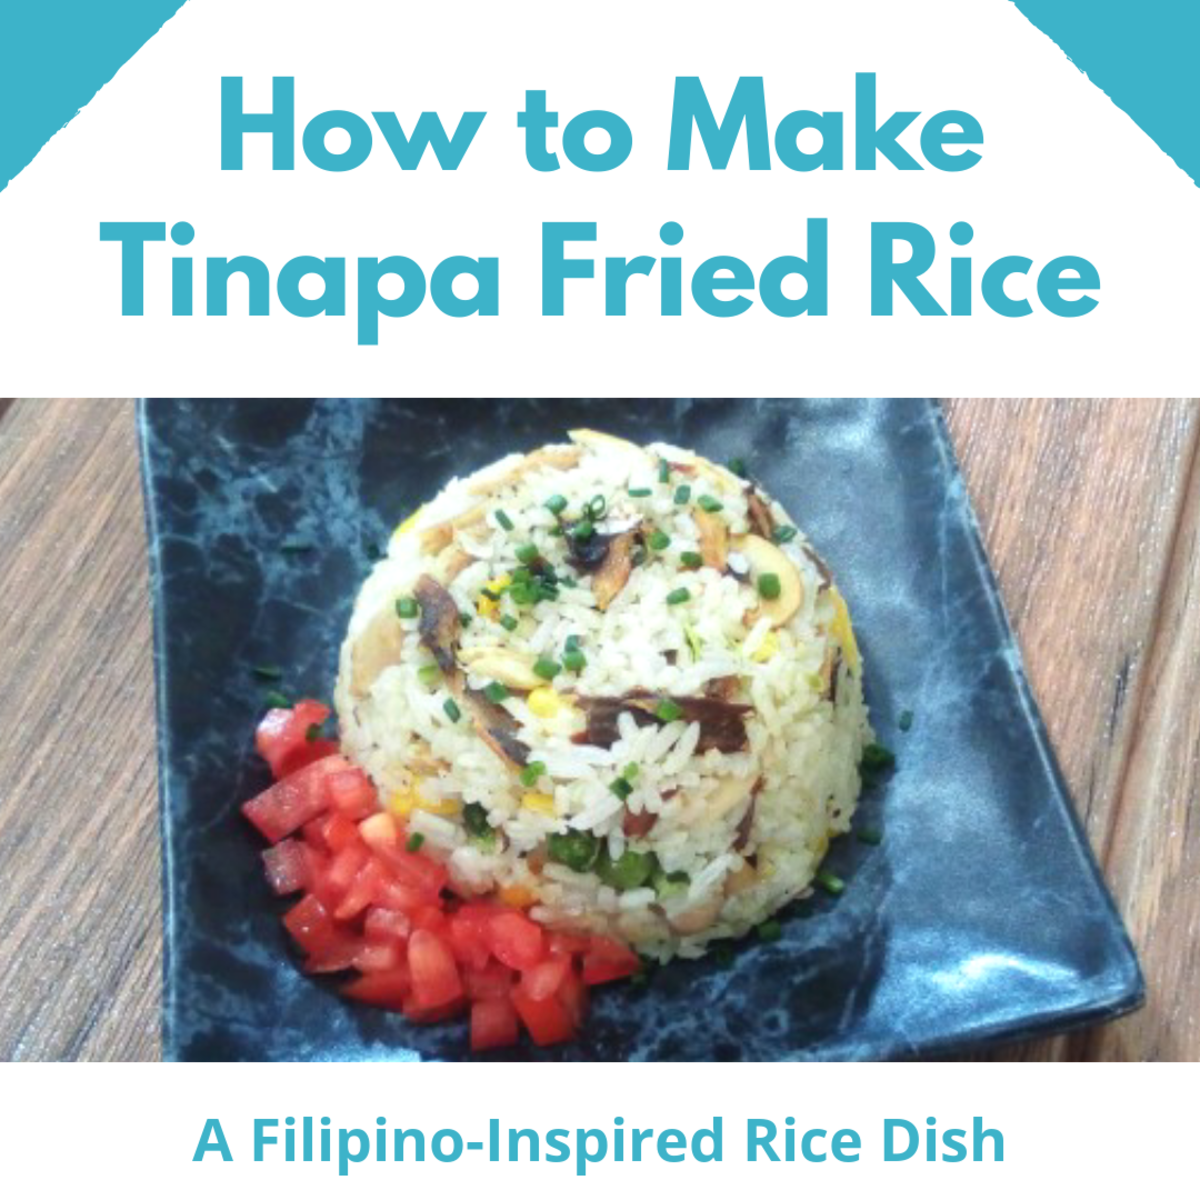 How to Make Tinapa Fried Rice: A Filipino-Inspired Dish